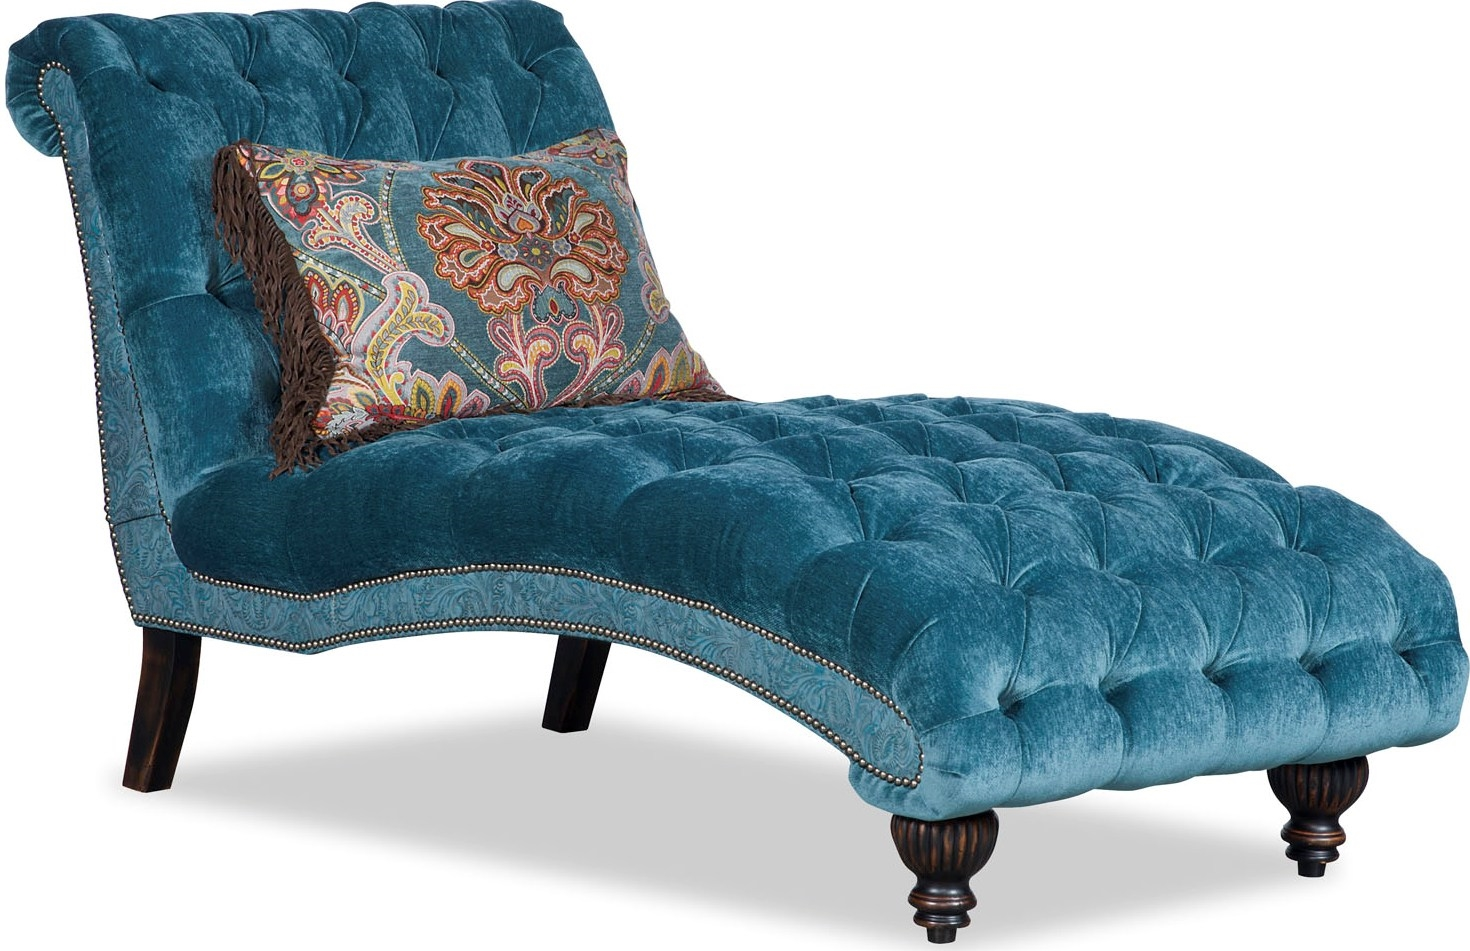 Tufted chaise longue chair aqua colored for Chaise coloree